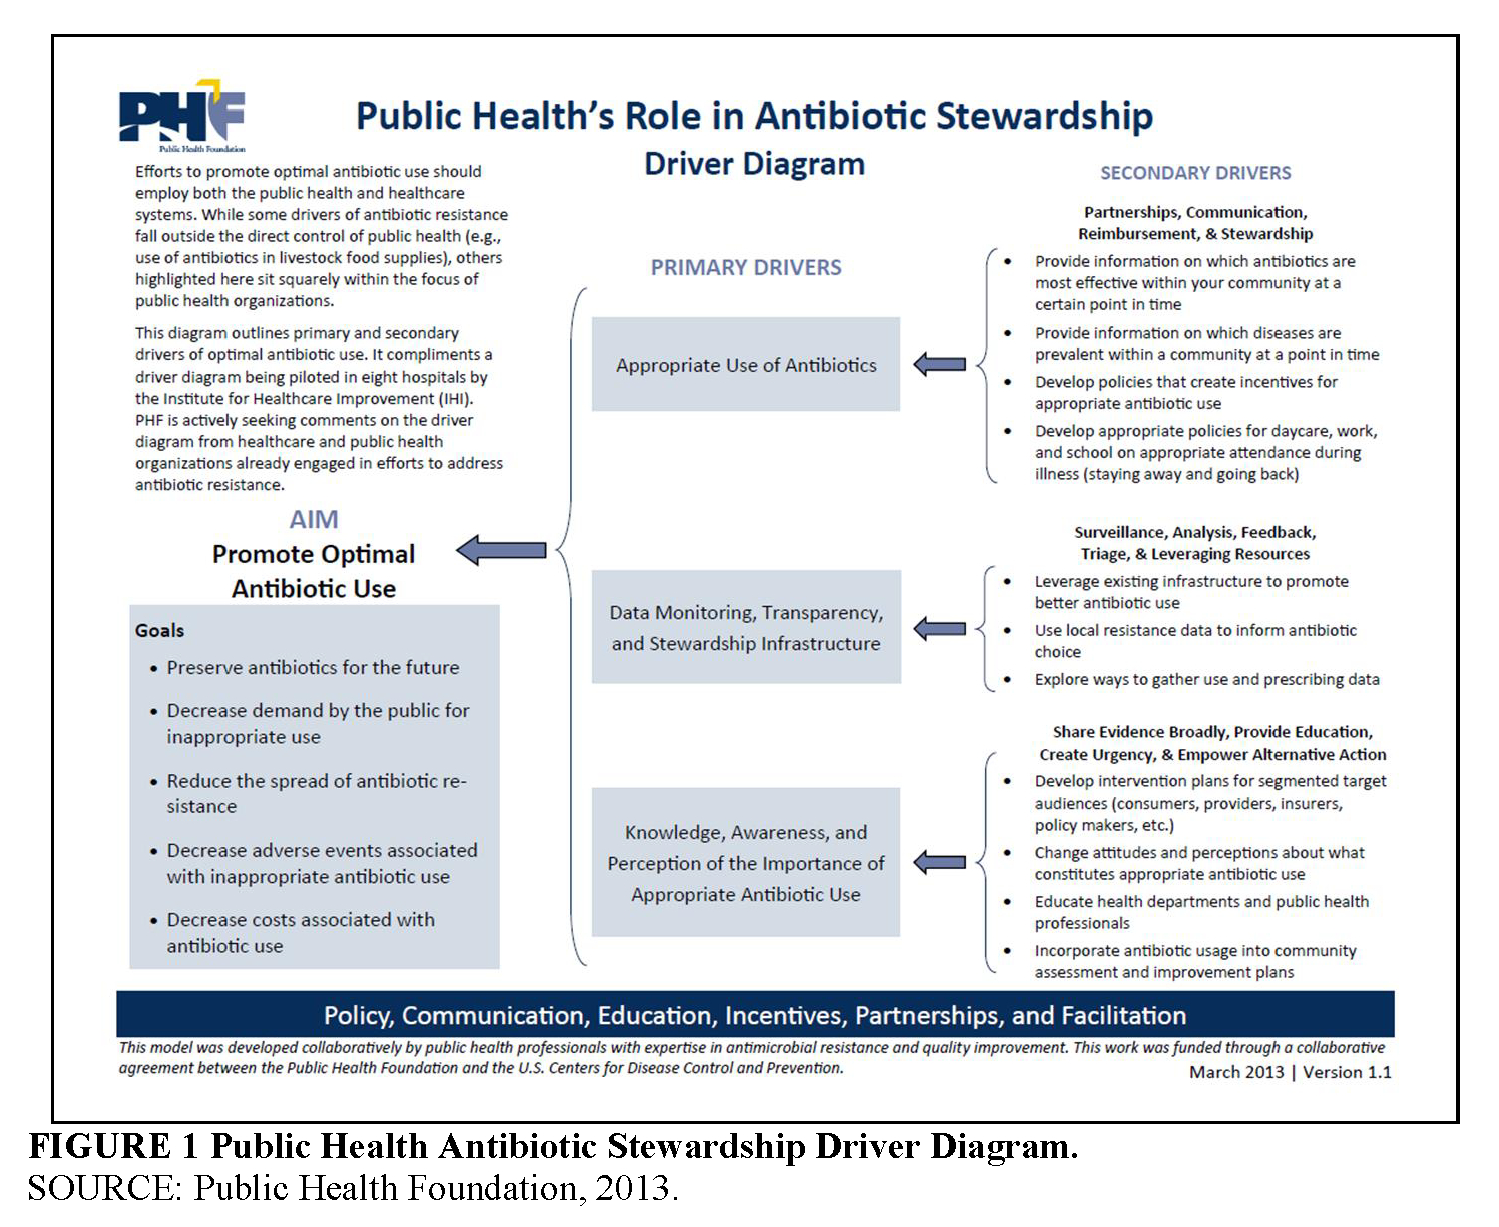 Using A Population Health Driver Diagram To Support Health with regard to Driver Diagram